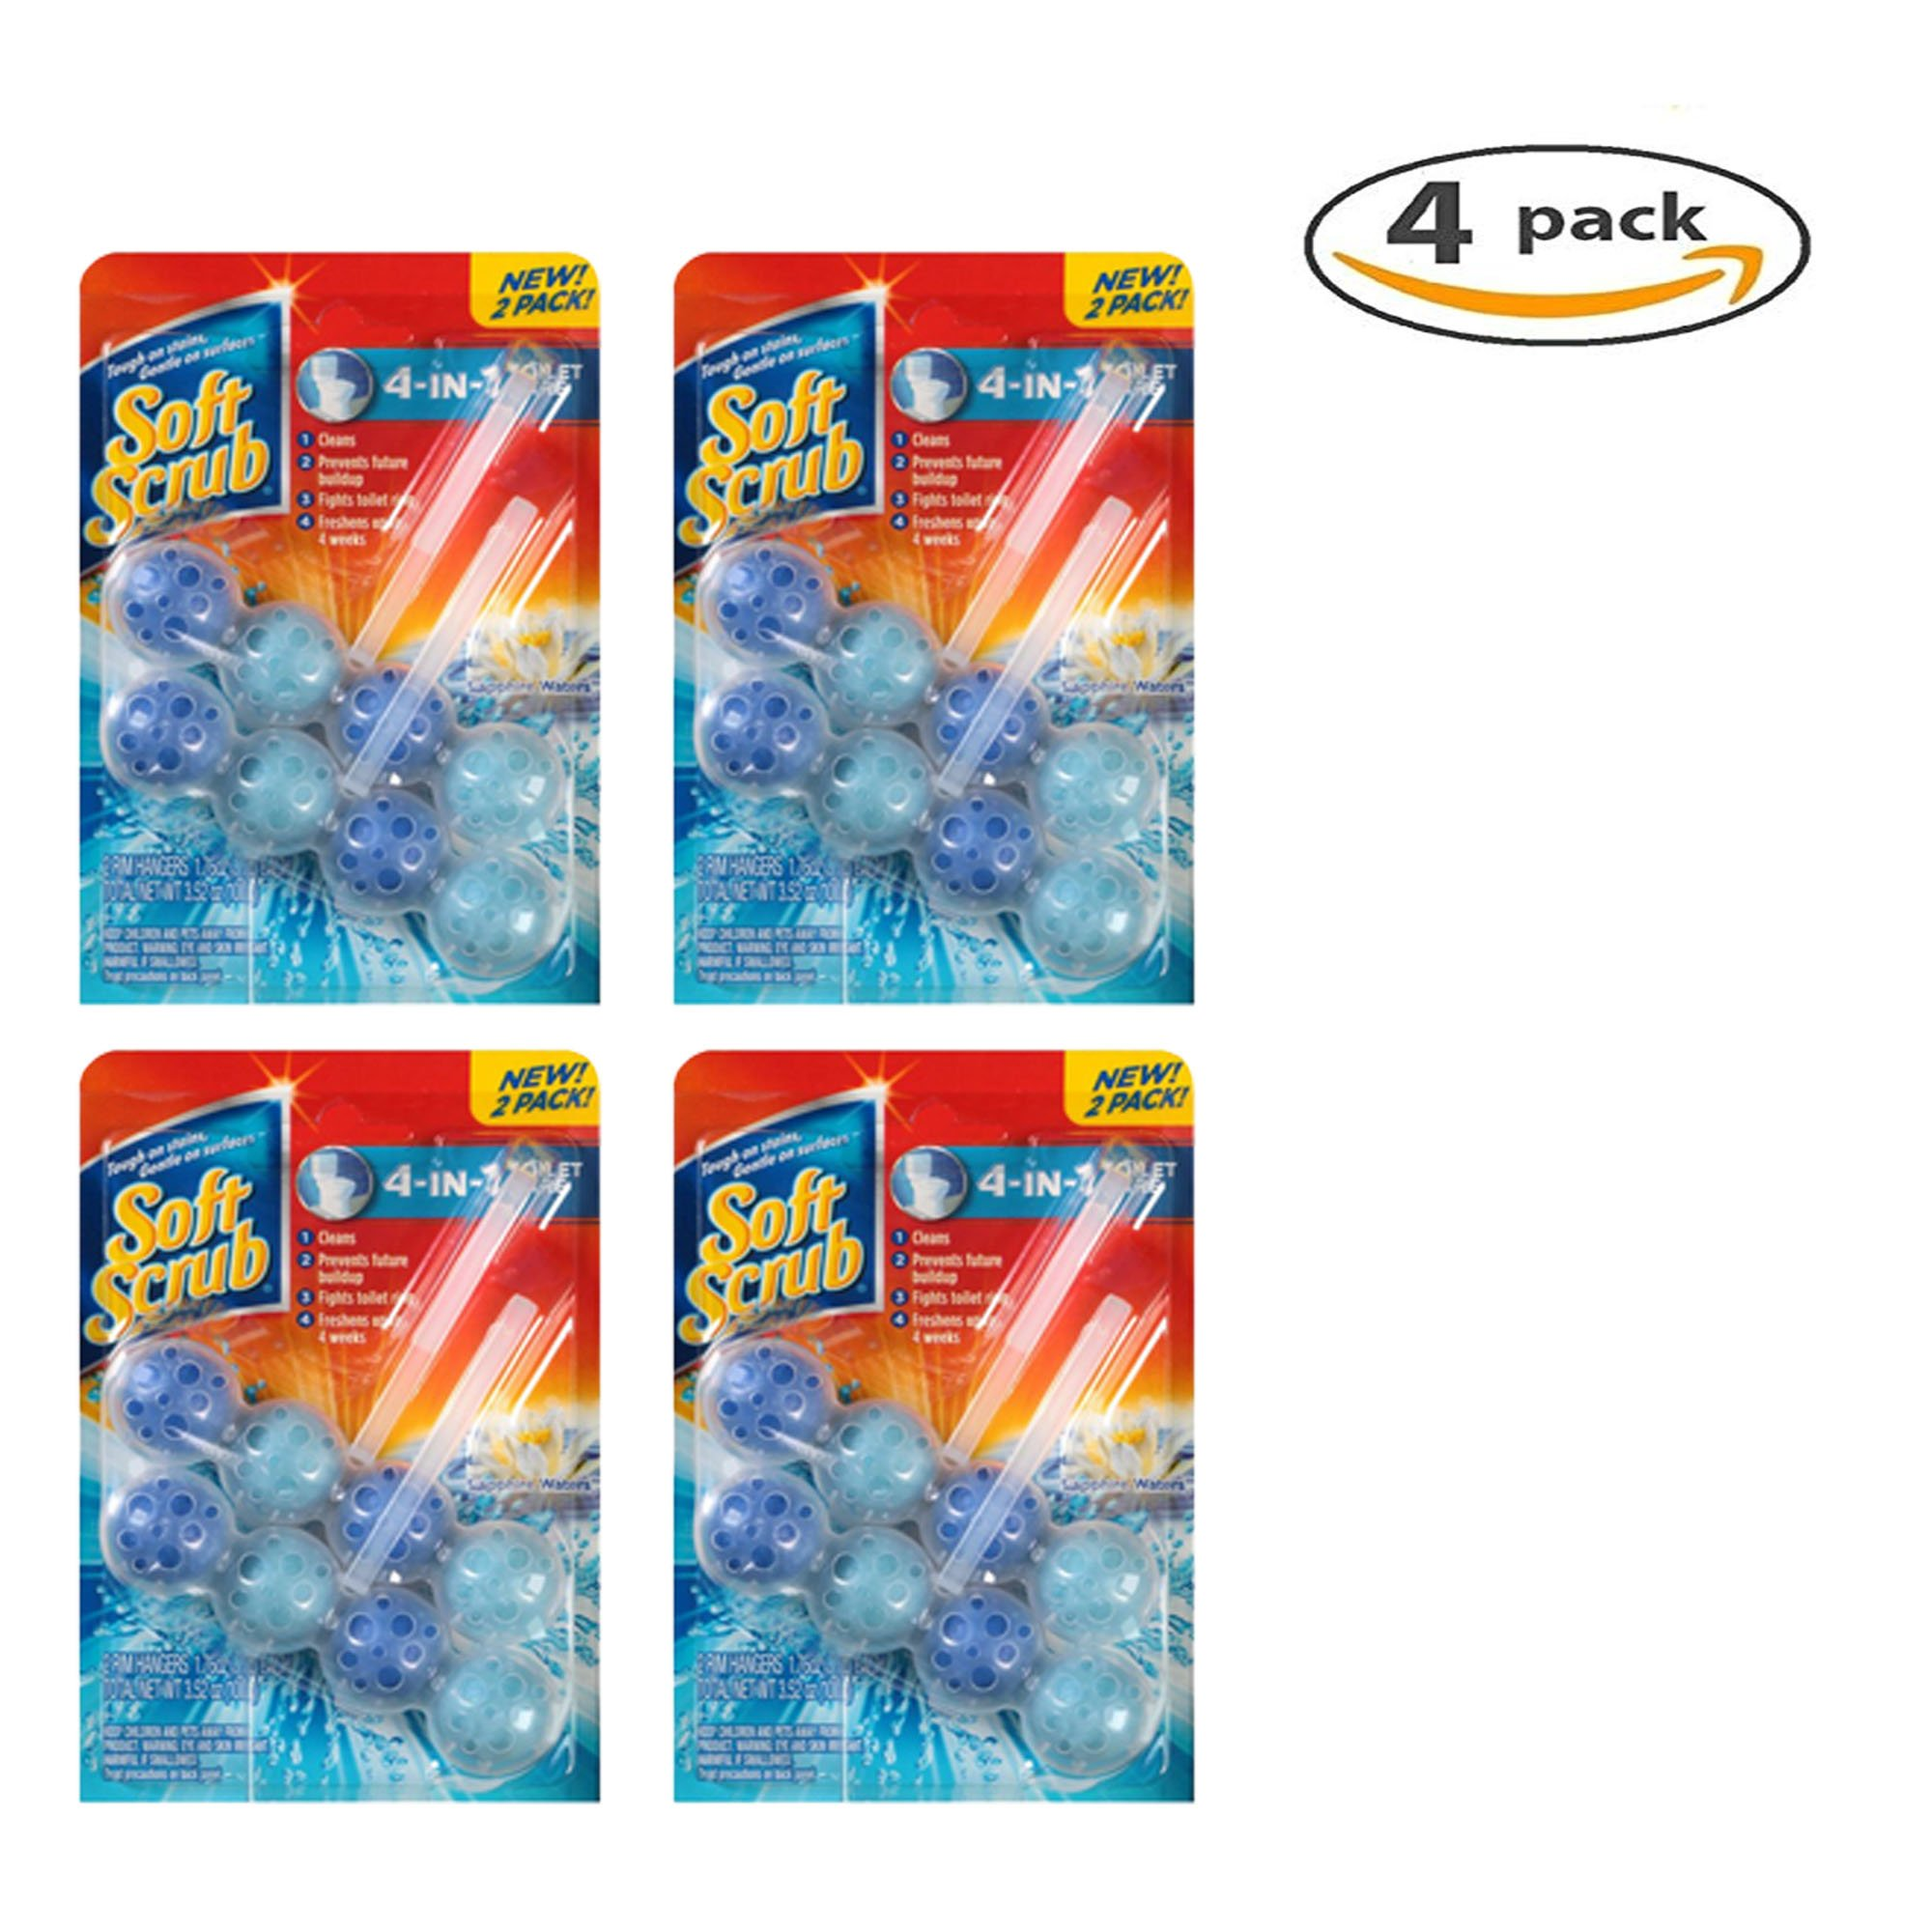 Soft Scrub 4-in-1 Toilet Care Sapphire Waters Rim Hangers (Pack of 4)